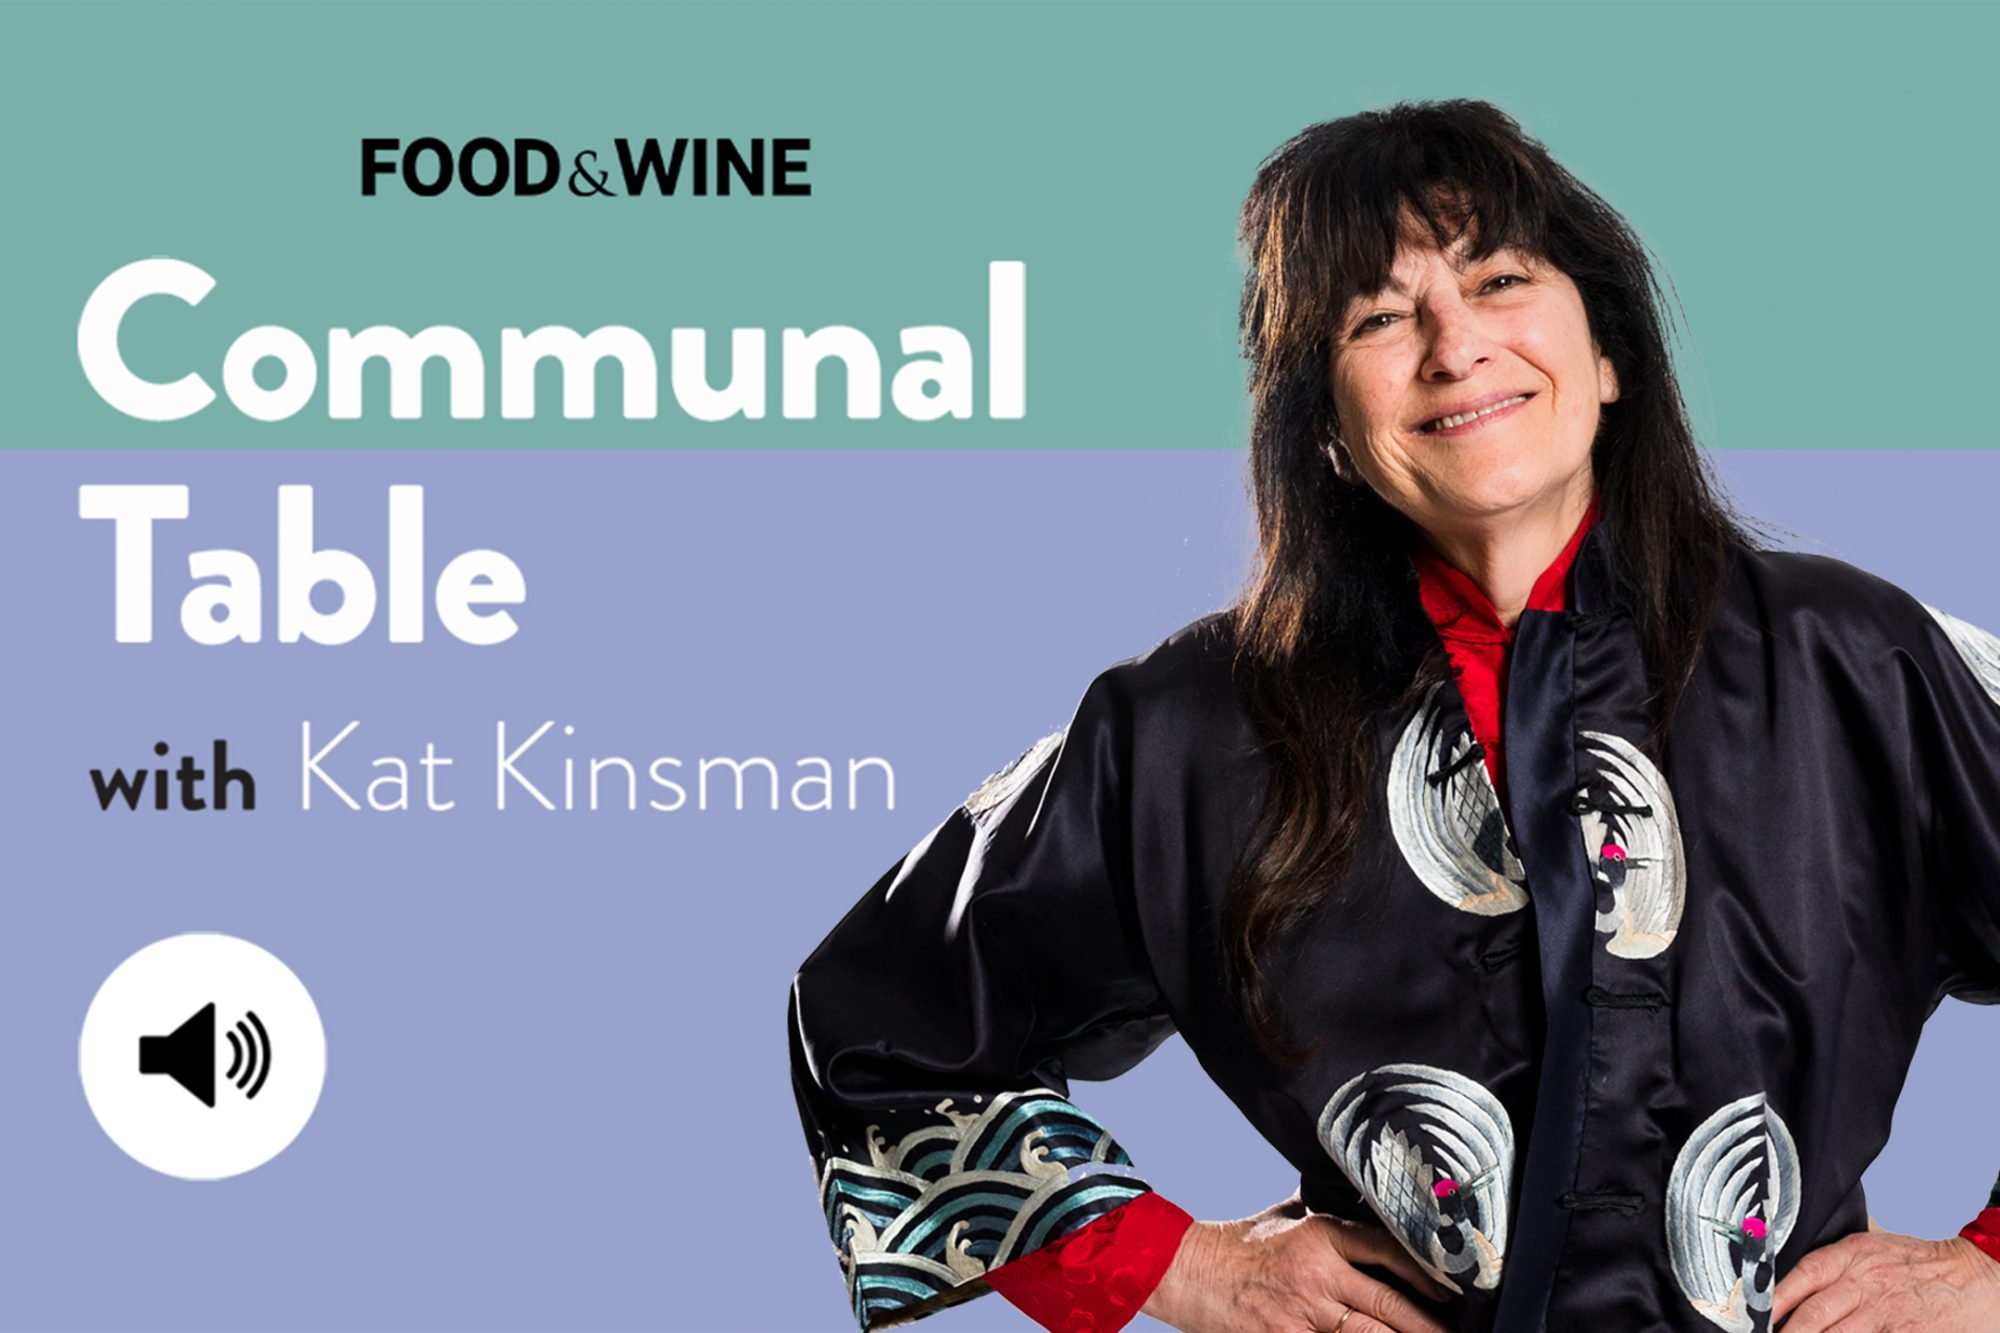 Communal Table with Kat Kinsman featuring Ruth Reichl